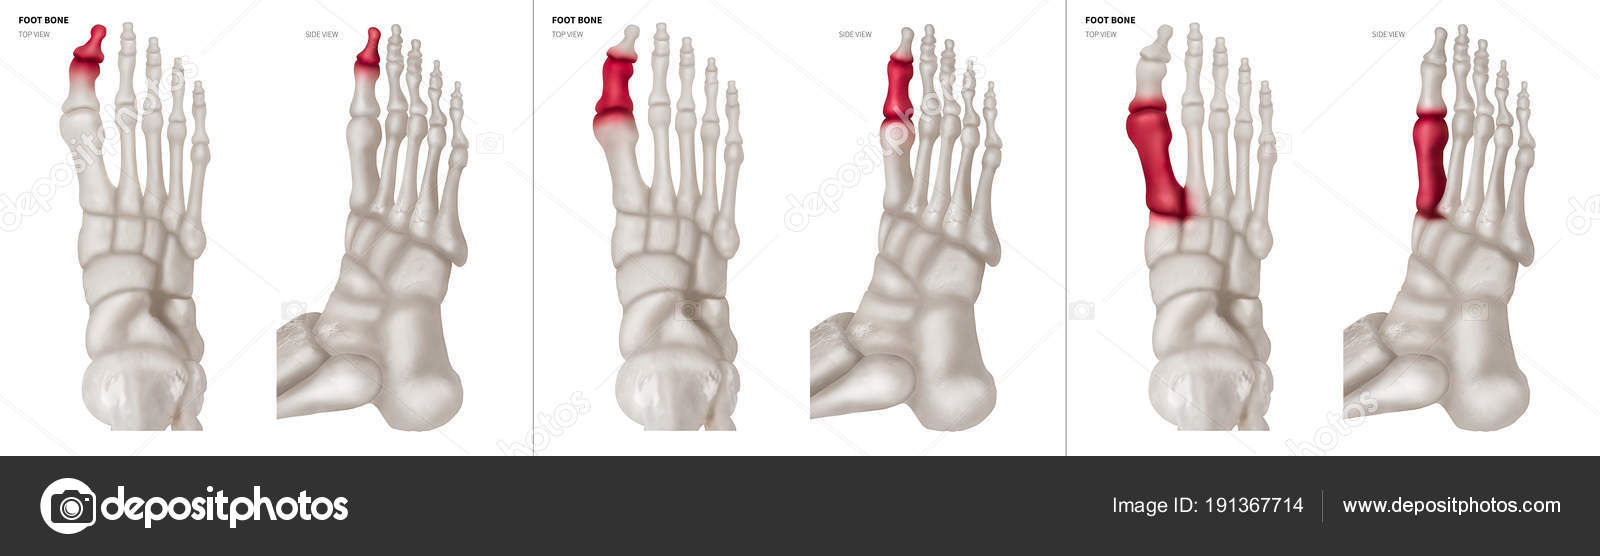 X-ray collection of Big toe foot bone with red highlights on ...